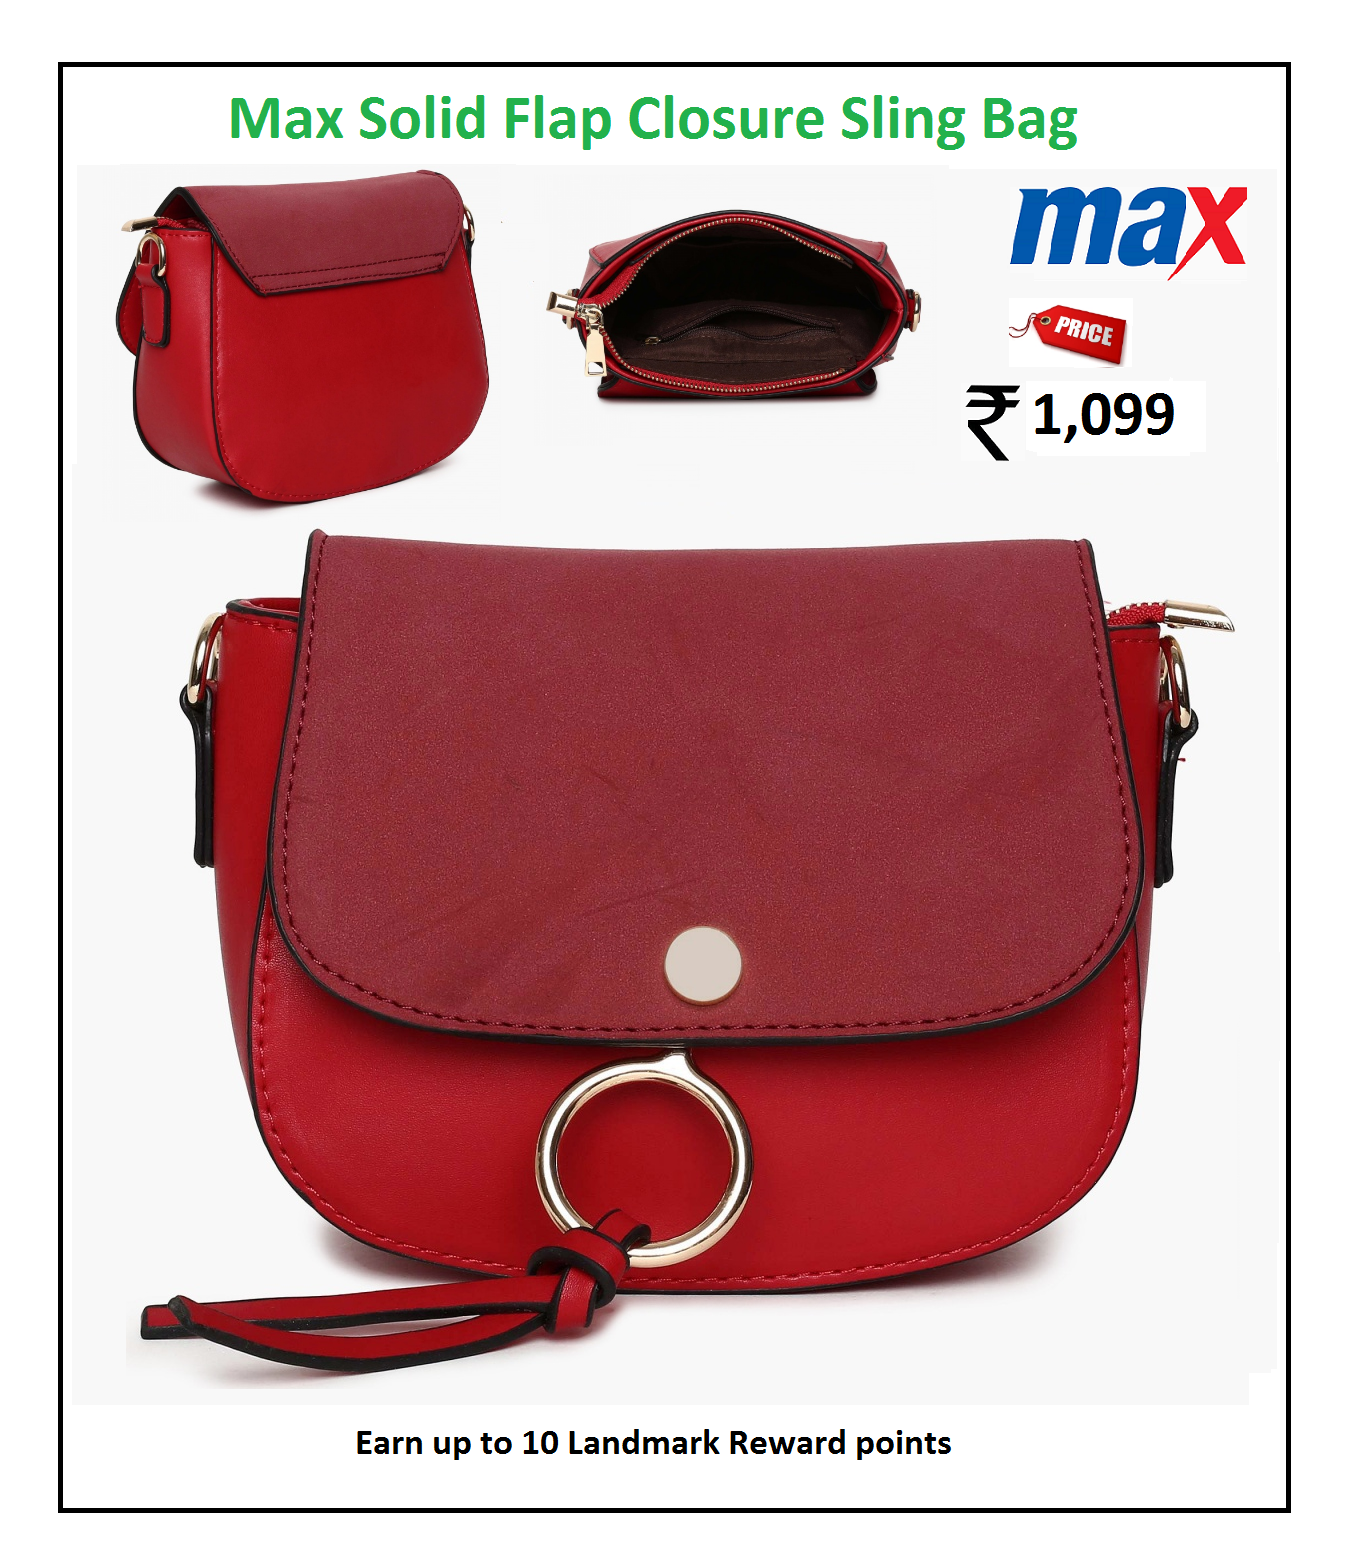 MAX Solid Flap Closure Sling Bag   Ladies Handbags   Pinterest 13353a0a04